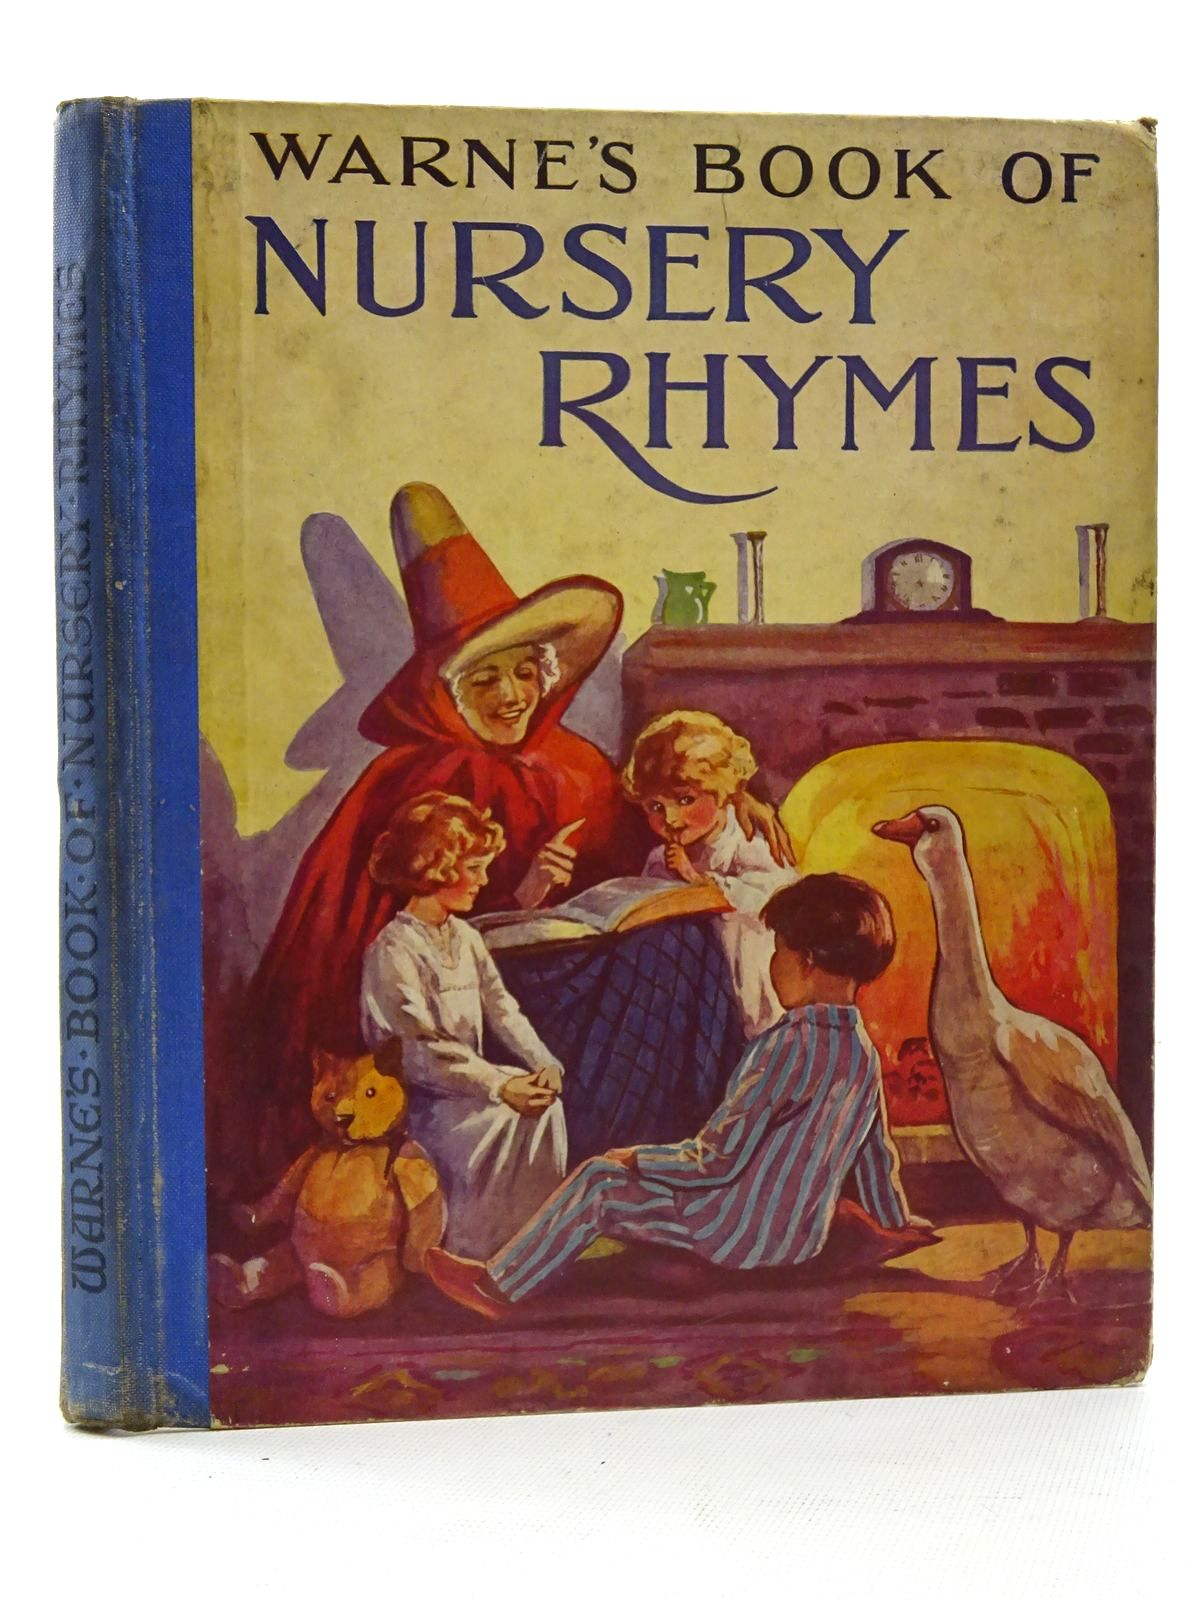 Photo of WARNE'S BOOK OF NURSERY RHYMES published by Frederick Warne & Co Ltd. (STOCK CODE: 2125246)  for sale by Stella & Rose's Books